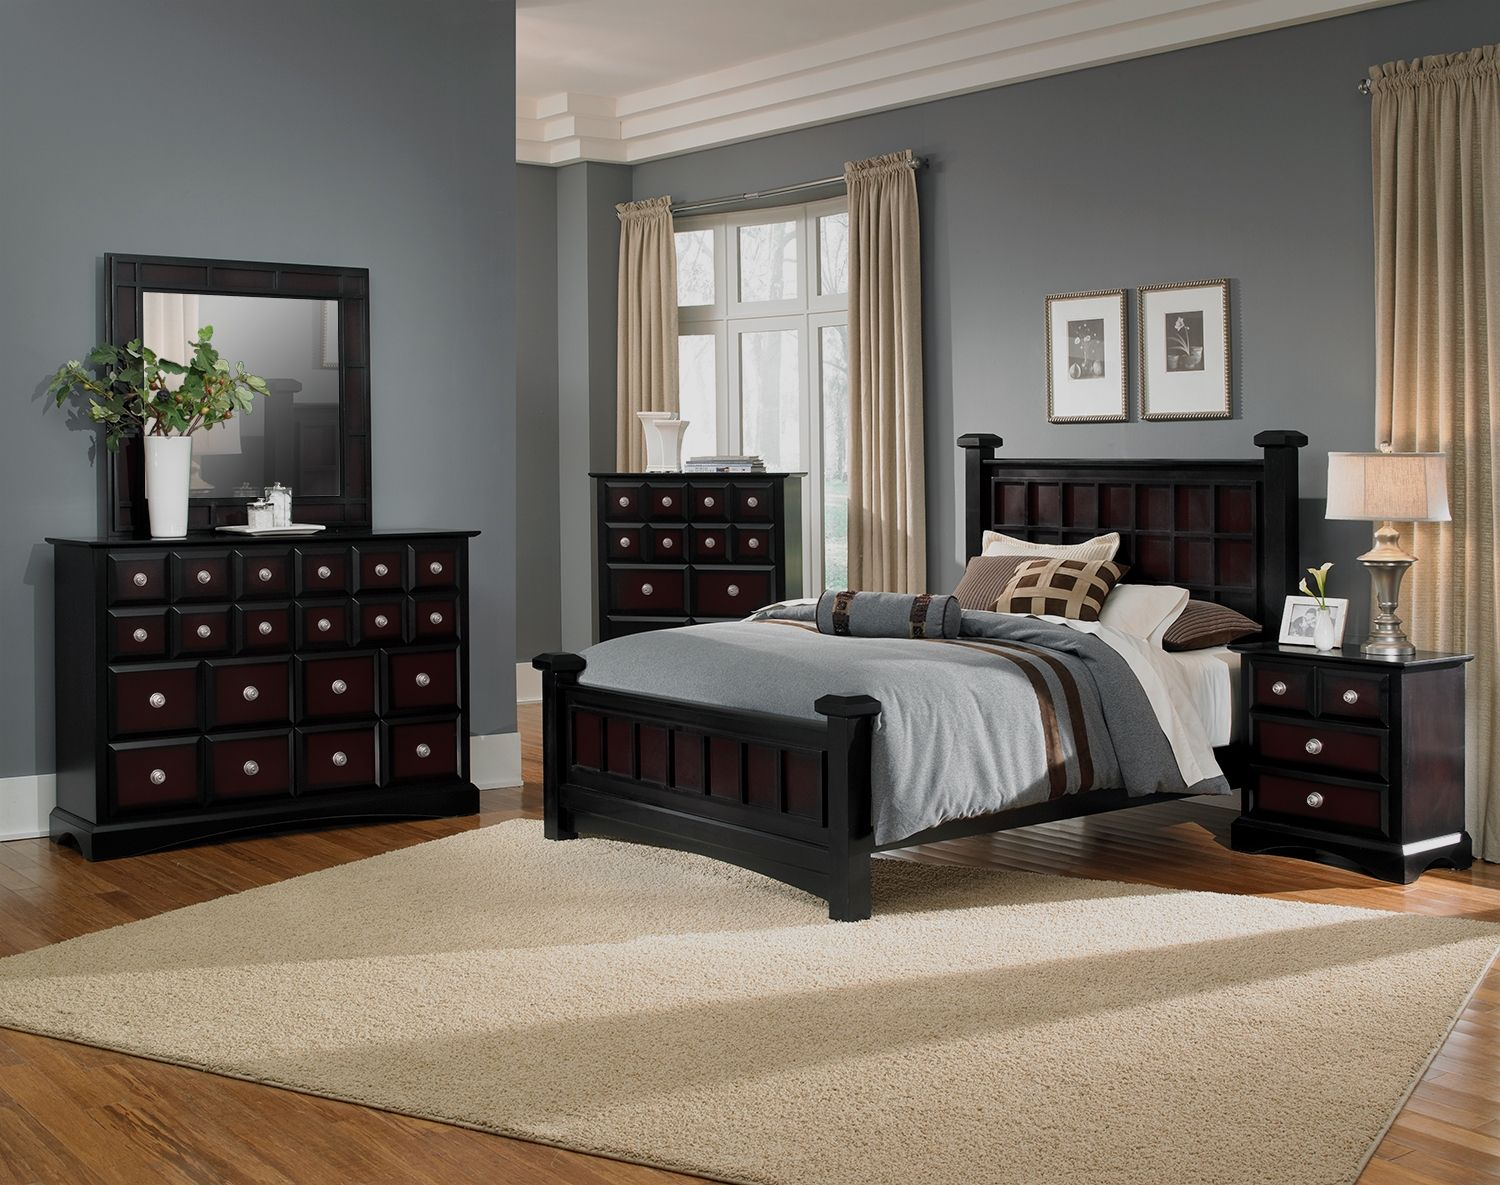 Miramar II Bedroom Collection   Value City Furniture Dont Like That Pieces  Are Sold Separately But Love The Mirrored Look | Master Bedroom | Pinterest  ...